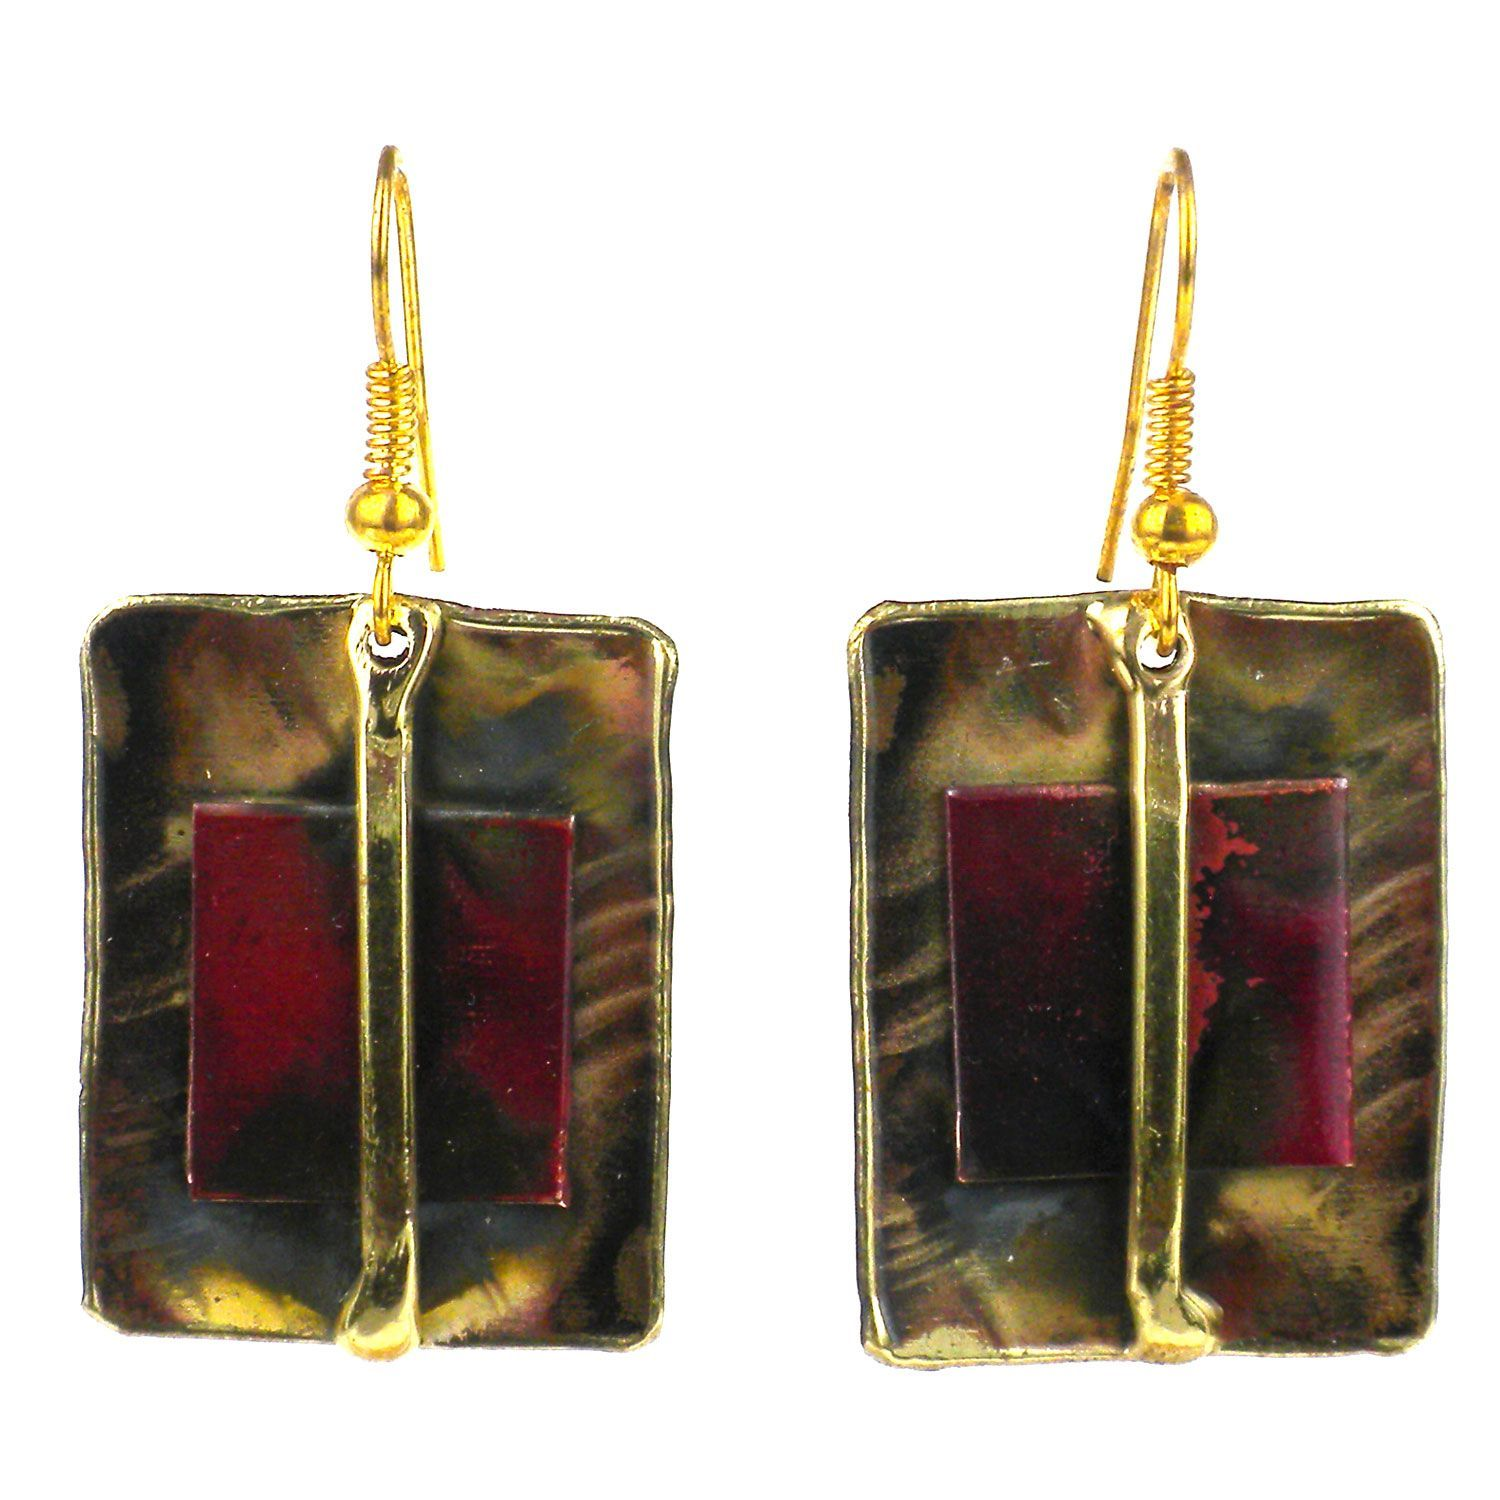 Global Crafts Handcrafted Square on Square and Earrings